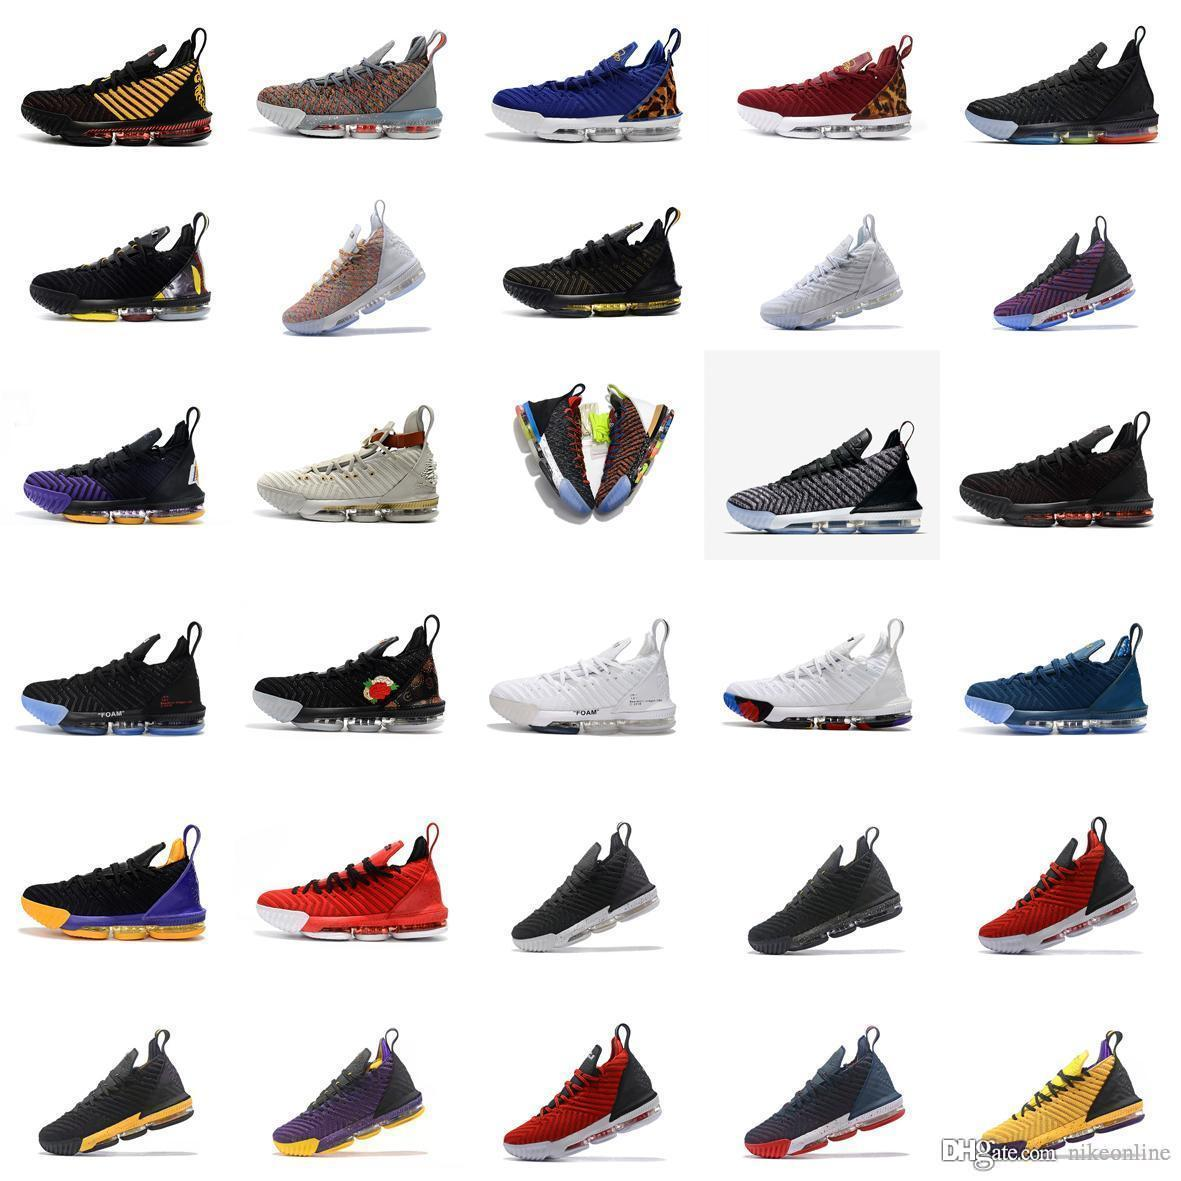 wholesale dealer a92df 832fd Mens lebron 16 basketball shoes Multi color Fruity Pebbles Gold Black  Purple Leopard Red Boys Girls Women youth kids sneakers boots with box